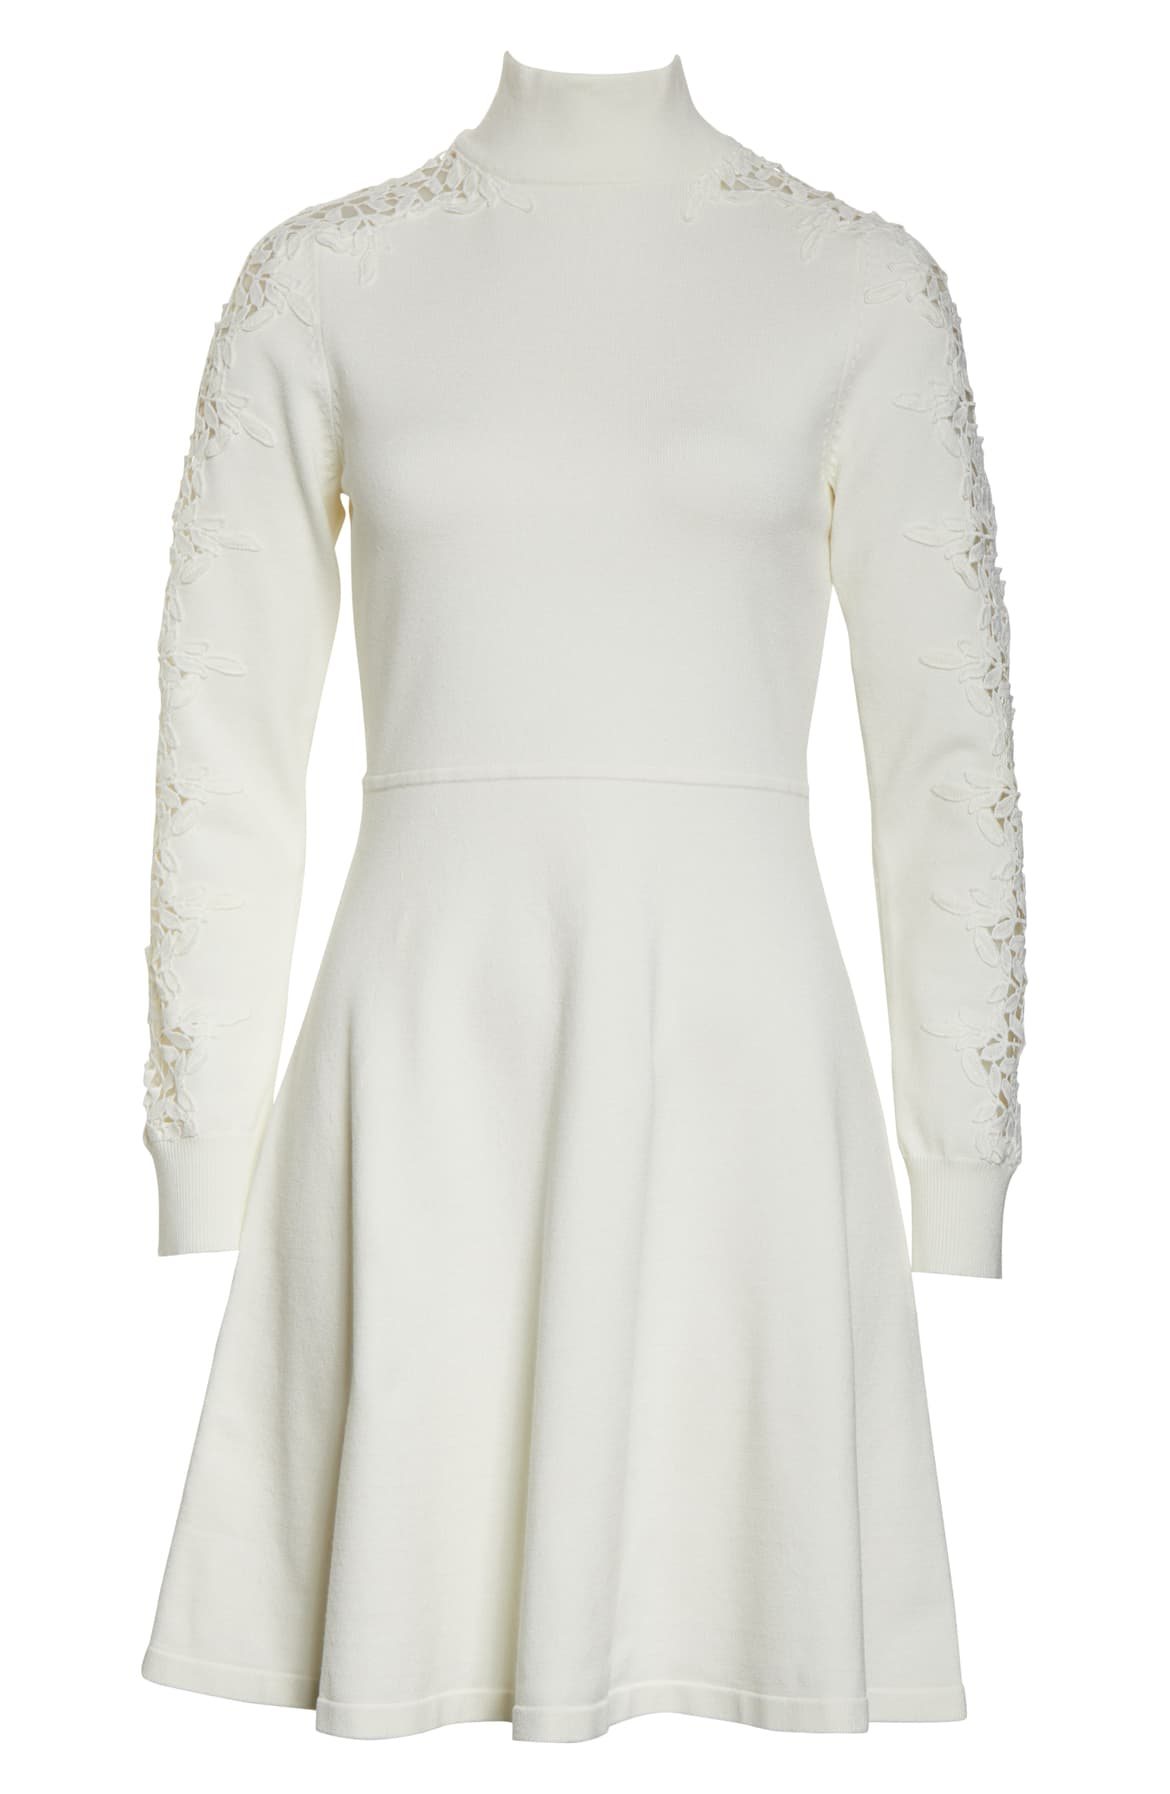 Long split sleeves are bridged by leafy, branching lace on this shapely fit-and-flare sweater-dress topped by an elegant high mock neck. $148.{ }Shop the Look{ }(Image: Nordstrom){ }